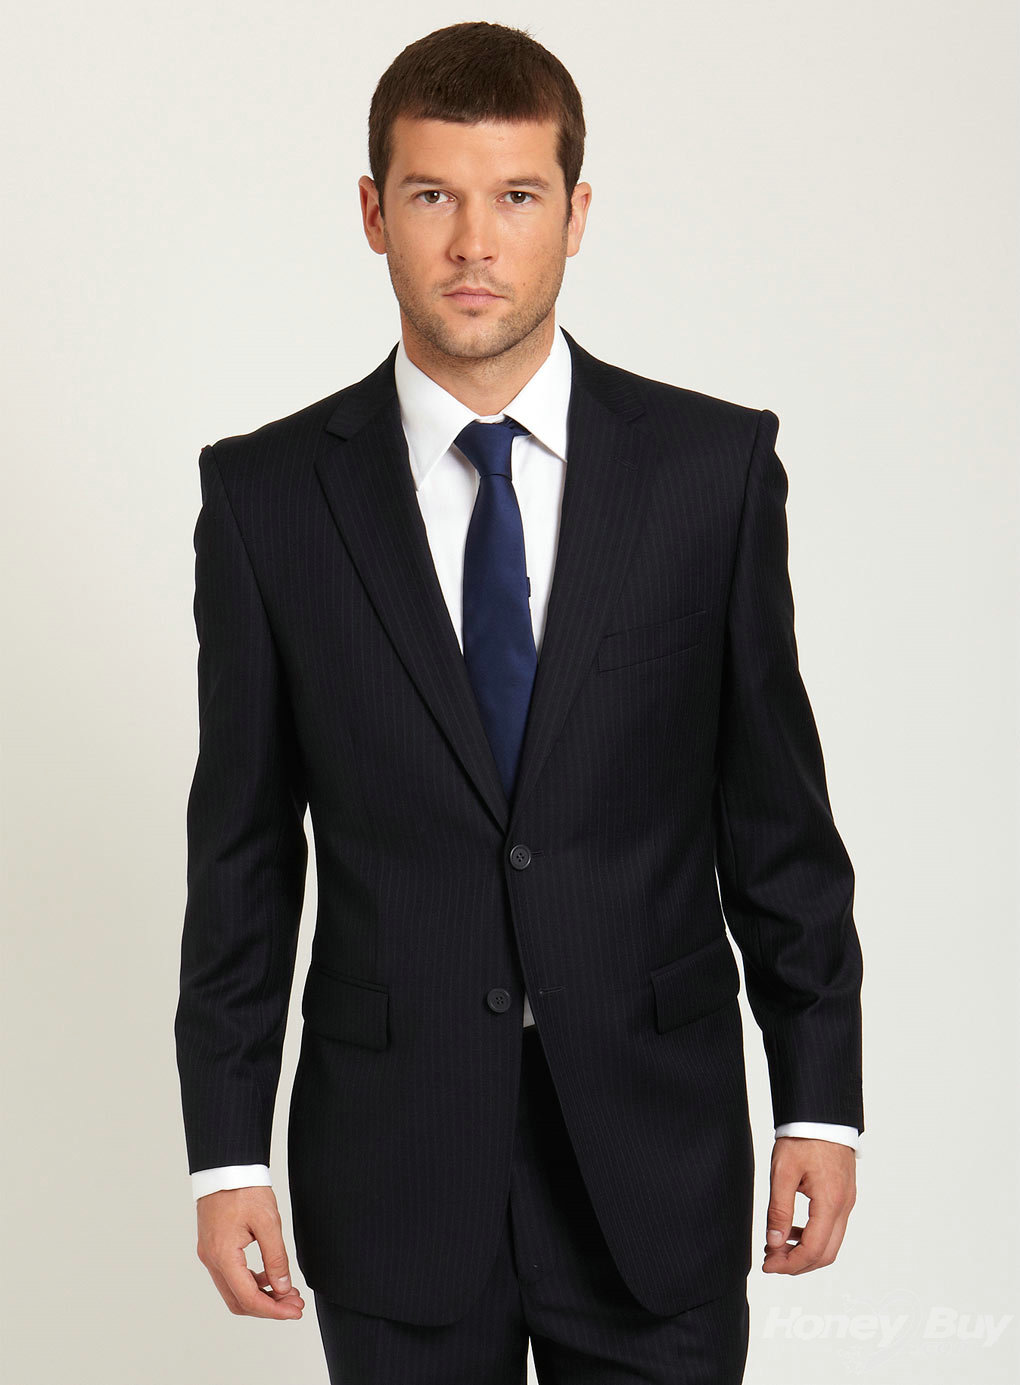 classic new arrival design notch lapel pinstripe business suit BGRVPPL